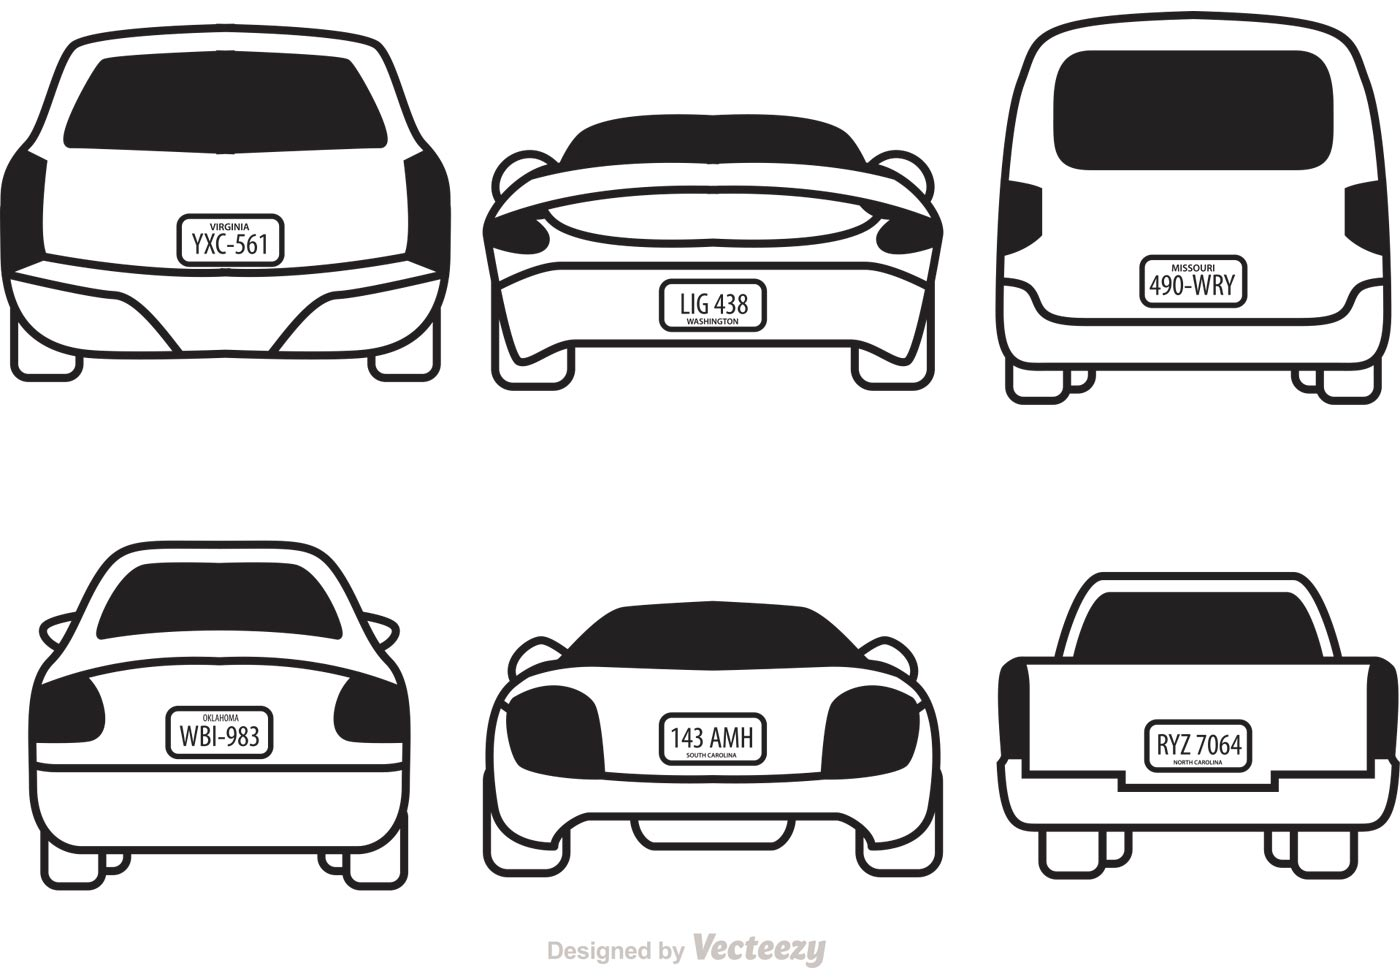 Cars With License Plates Vectors